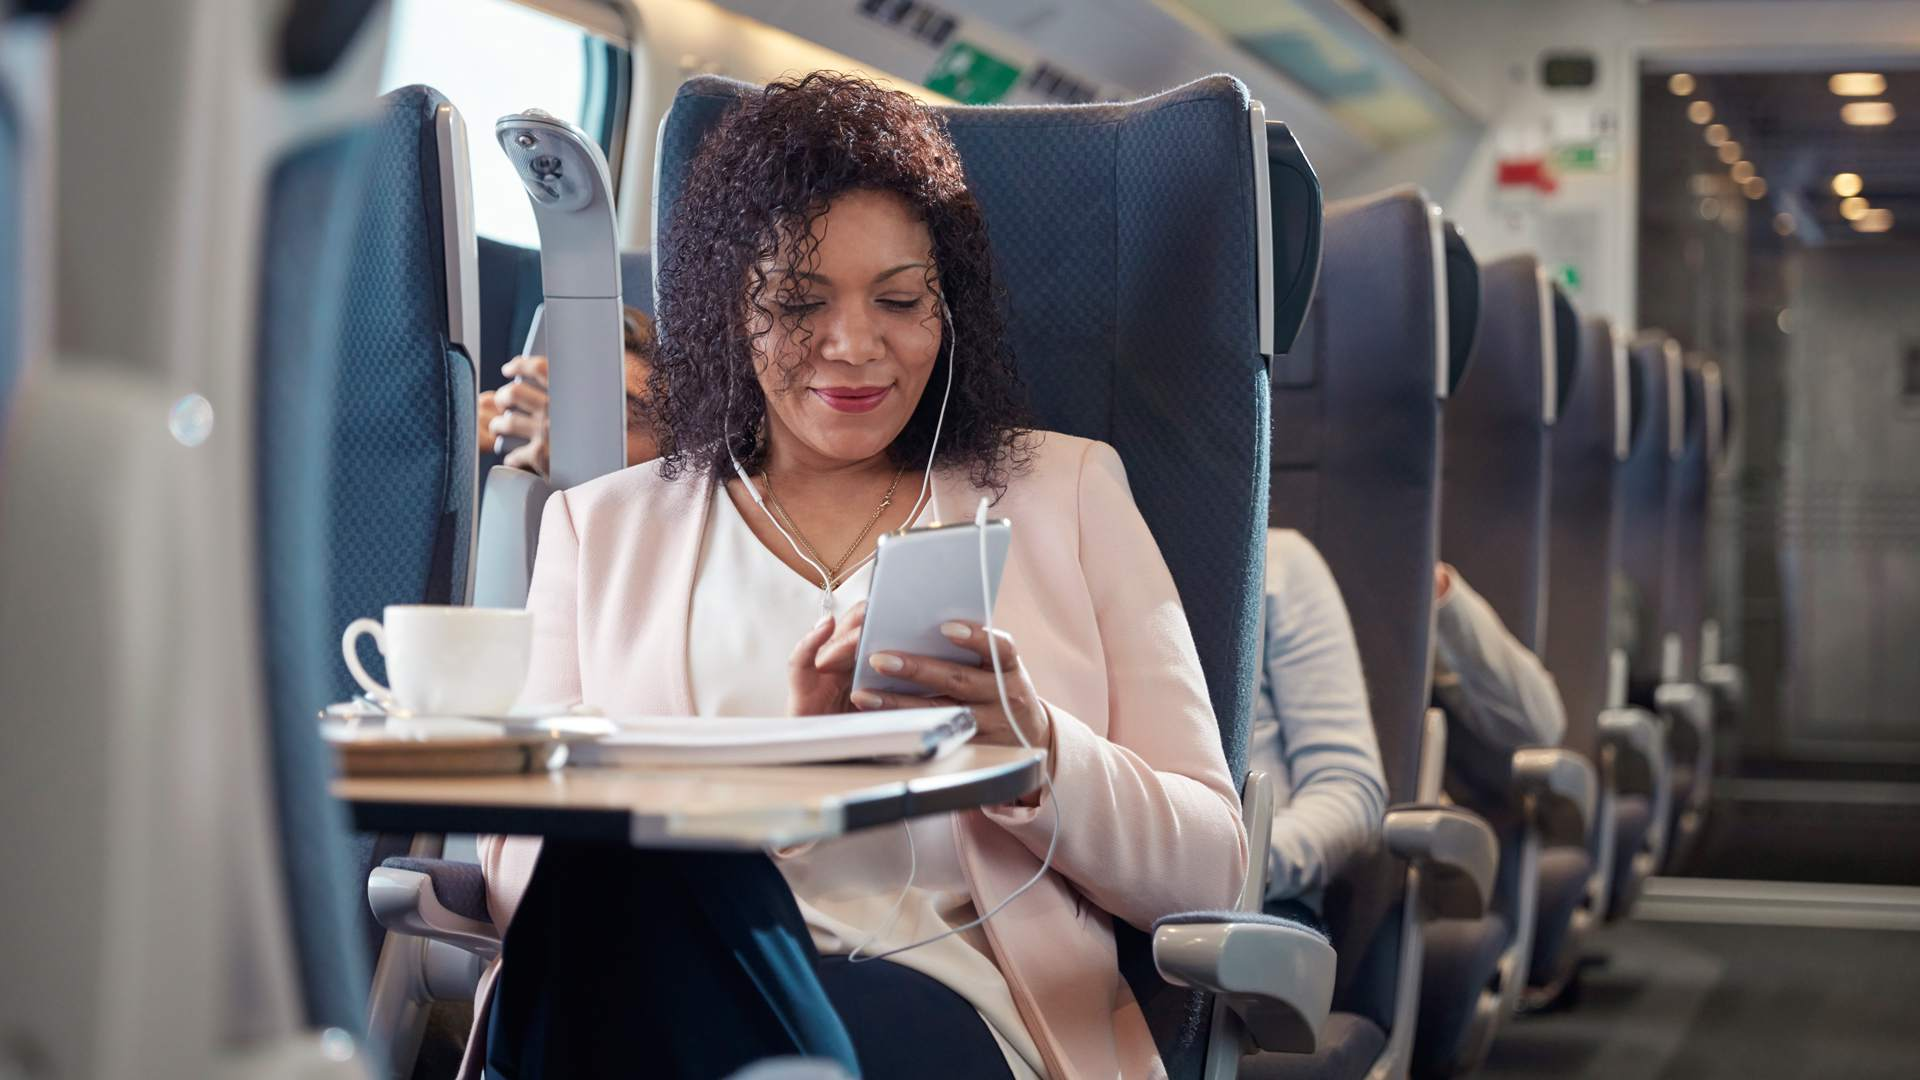 A woman watching downloaded videos on her smartphone while traveling internationally.